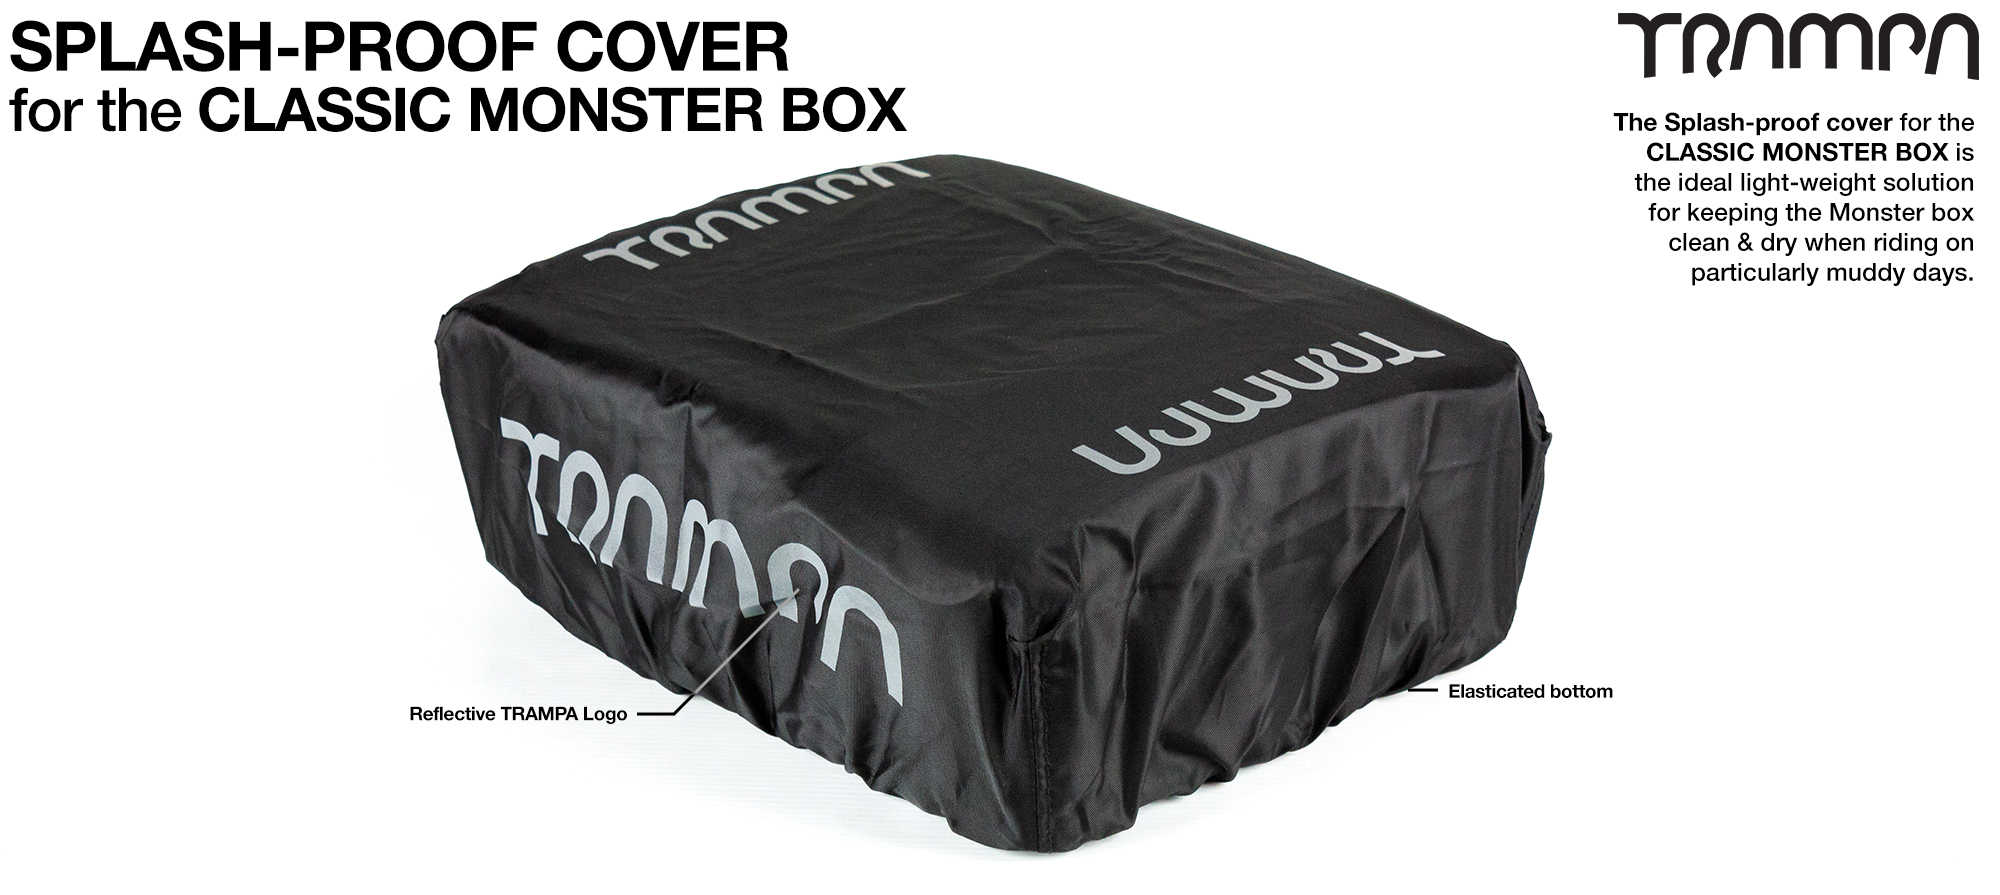 CLASSIC MONSTER Box - Reflective light weight whilst Splash Proof Top Cover